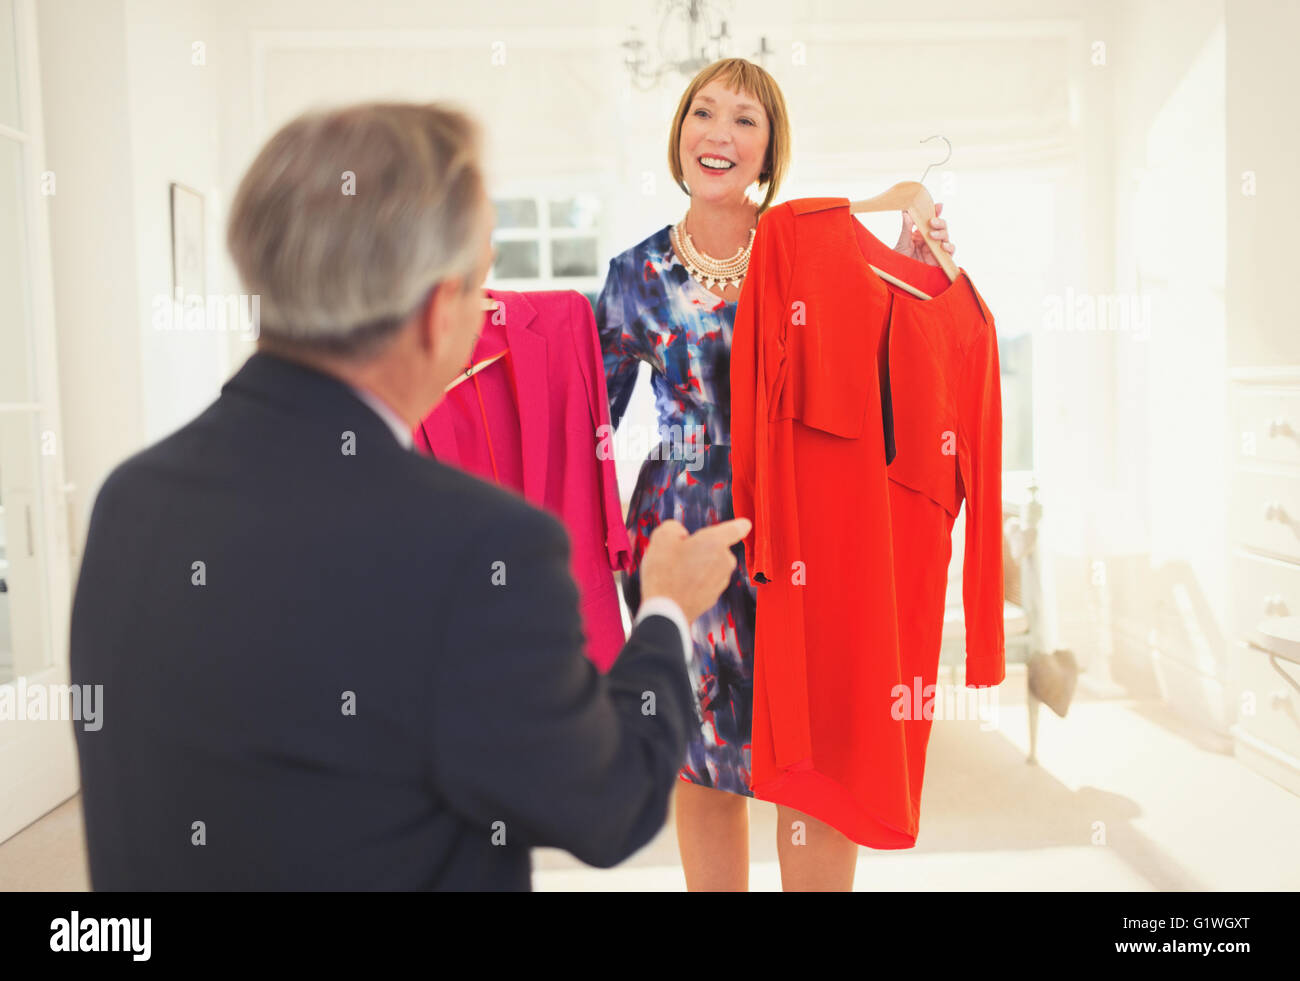 Husband helping wife decide which dress to wear - Stock Image